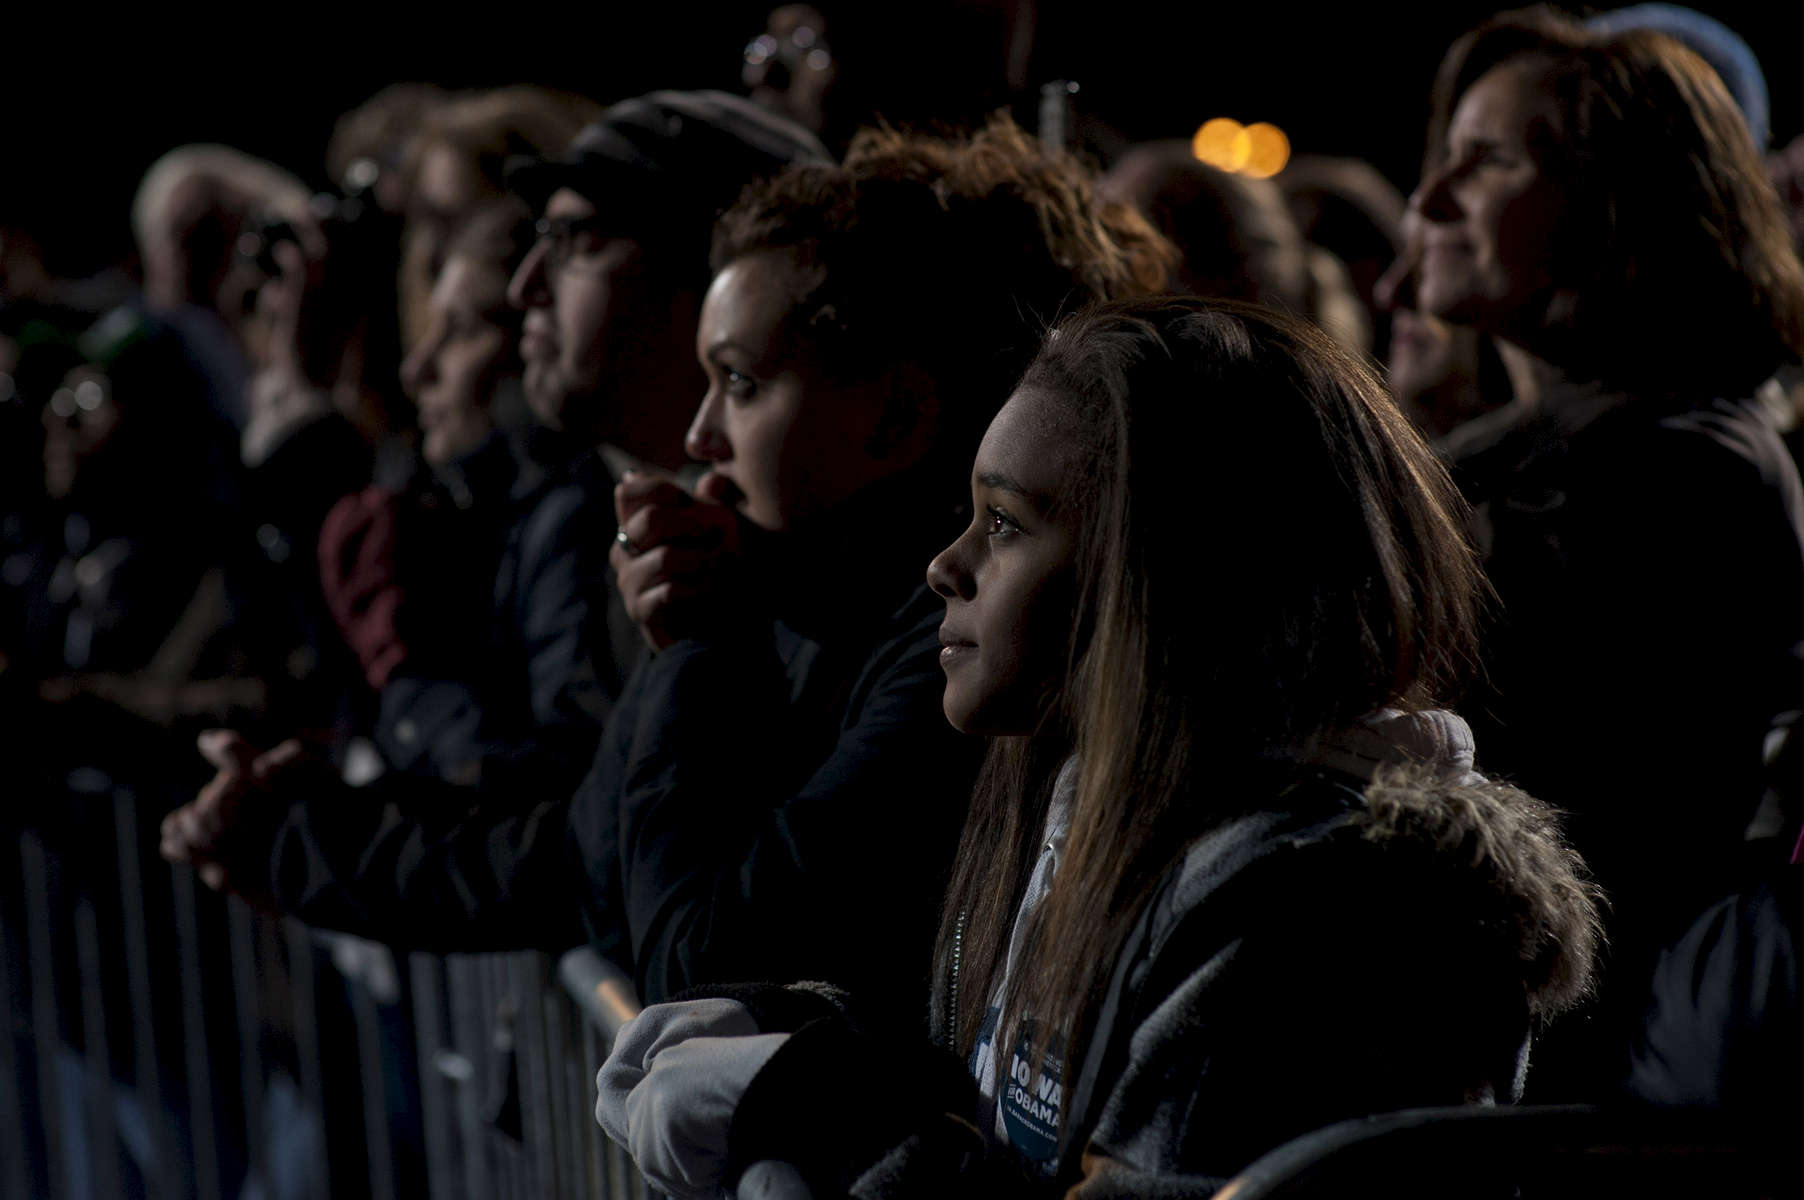 November 5, 2012 - Des Moines, IA:  Supporters listen as President Barack Obama  speaks at his last ever campaign event the night before the 2012 election. (Scout Tufankjian for Obama for America/Polaris)